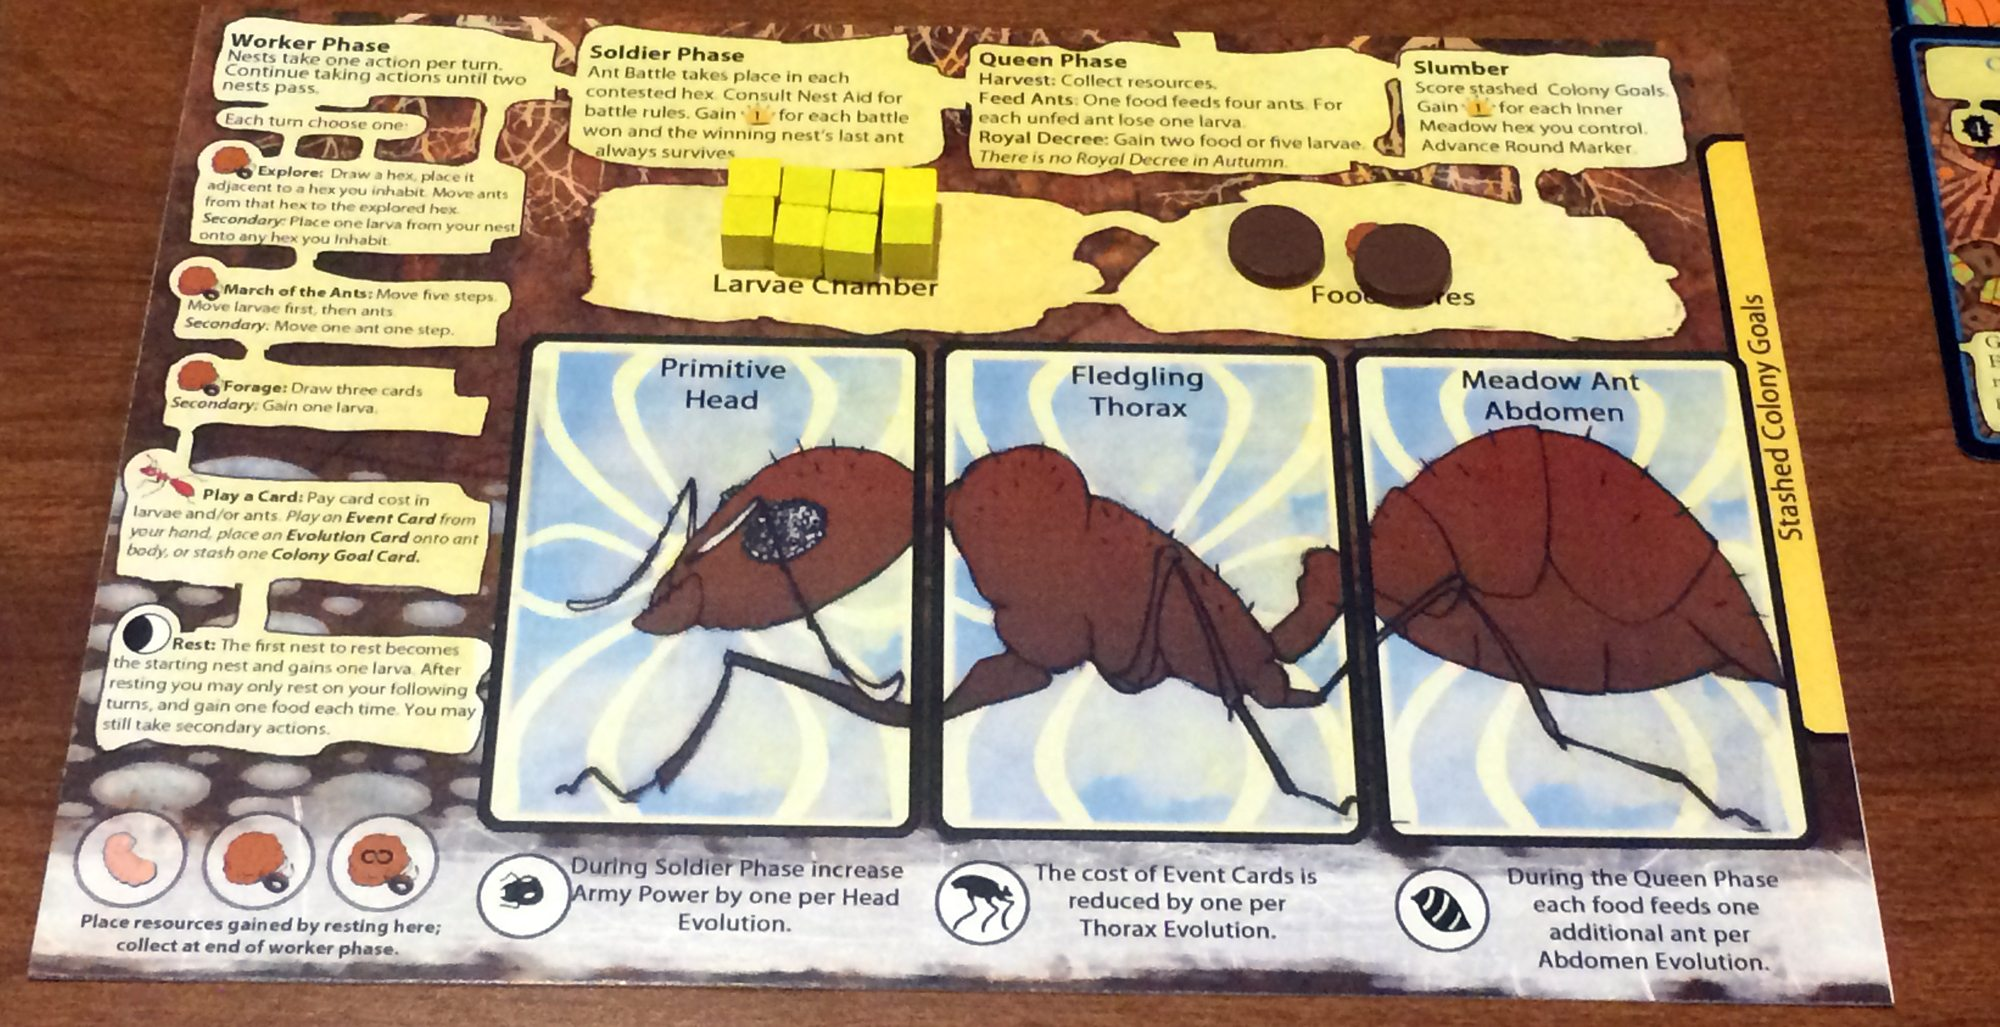 March of the Ants player board